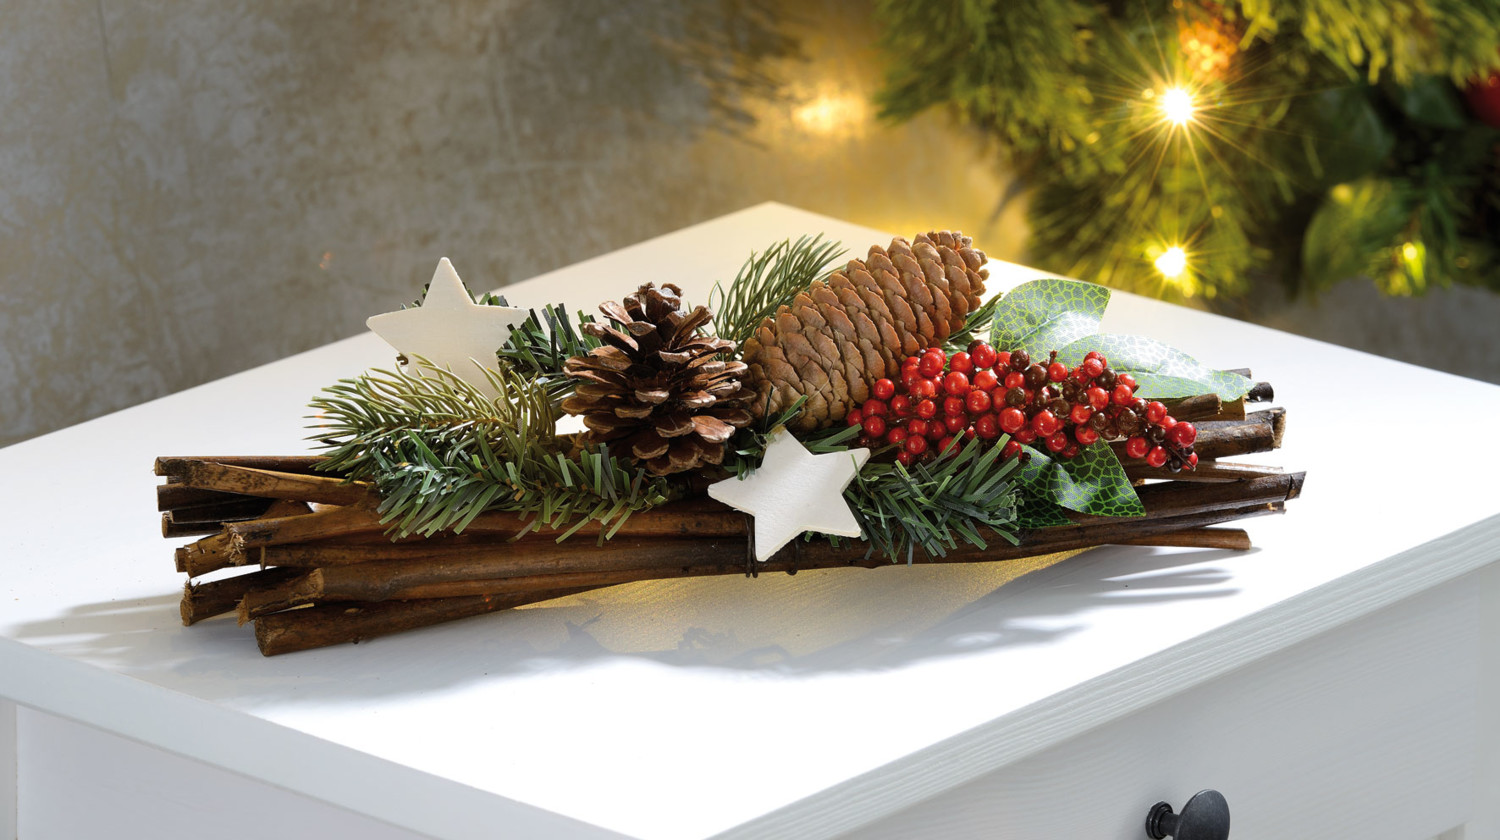 Meilleur 6603 d coration table noel avec houx avec des for Decoration reveillon